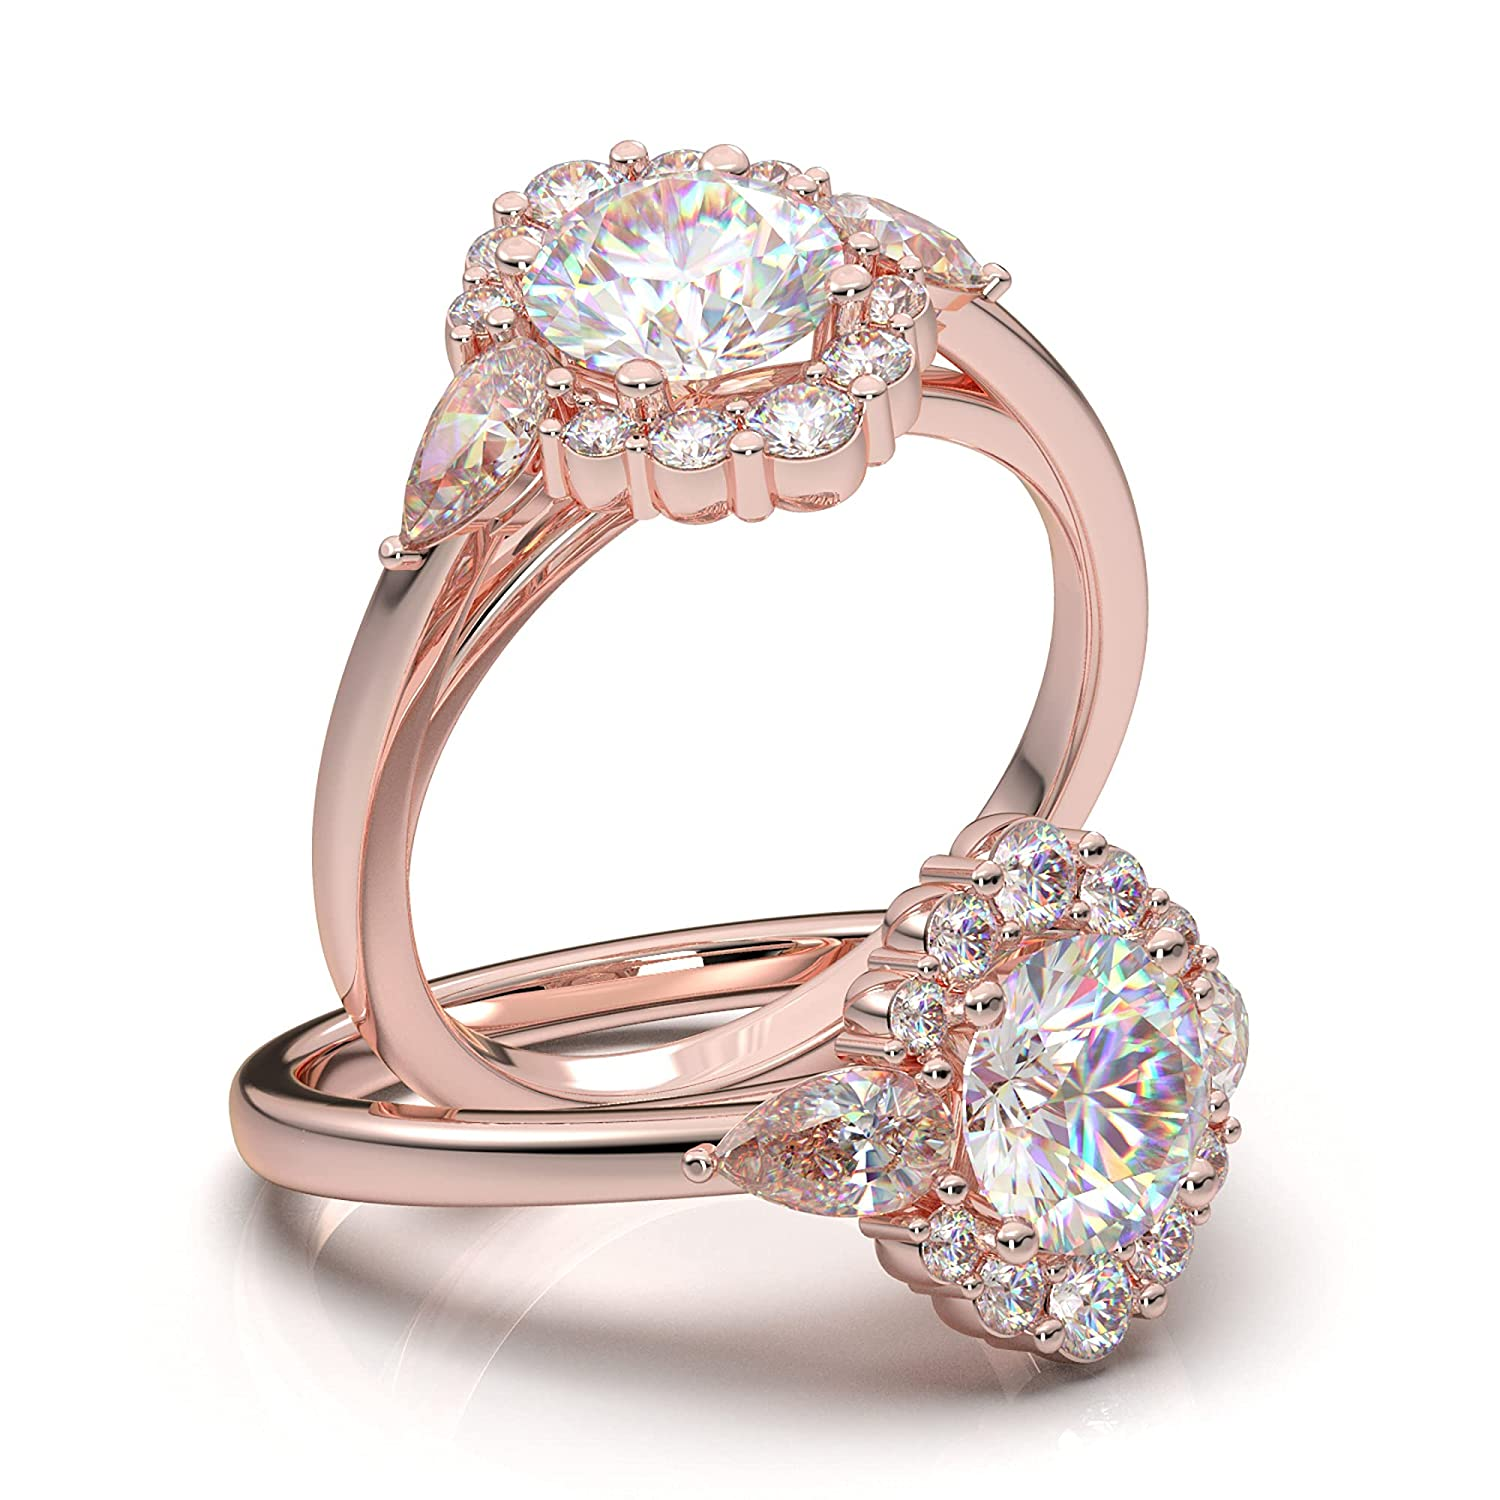 Rose Gold Unique Halo Popularity Engagement Oval Shap Ring Albuquerque Mall Pear Shaped